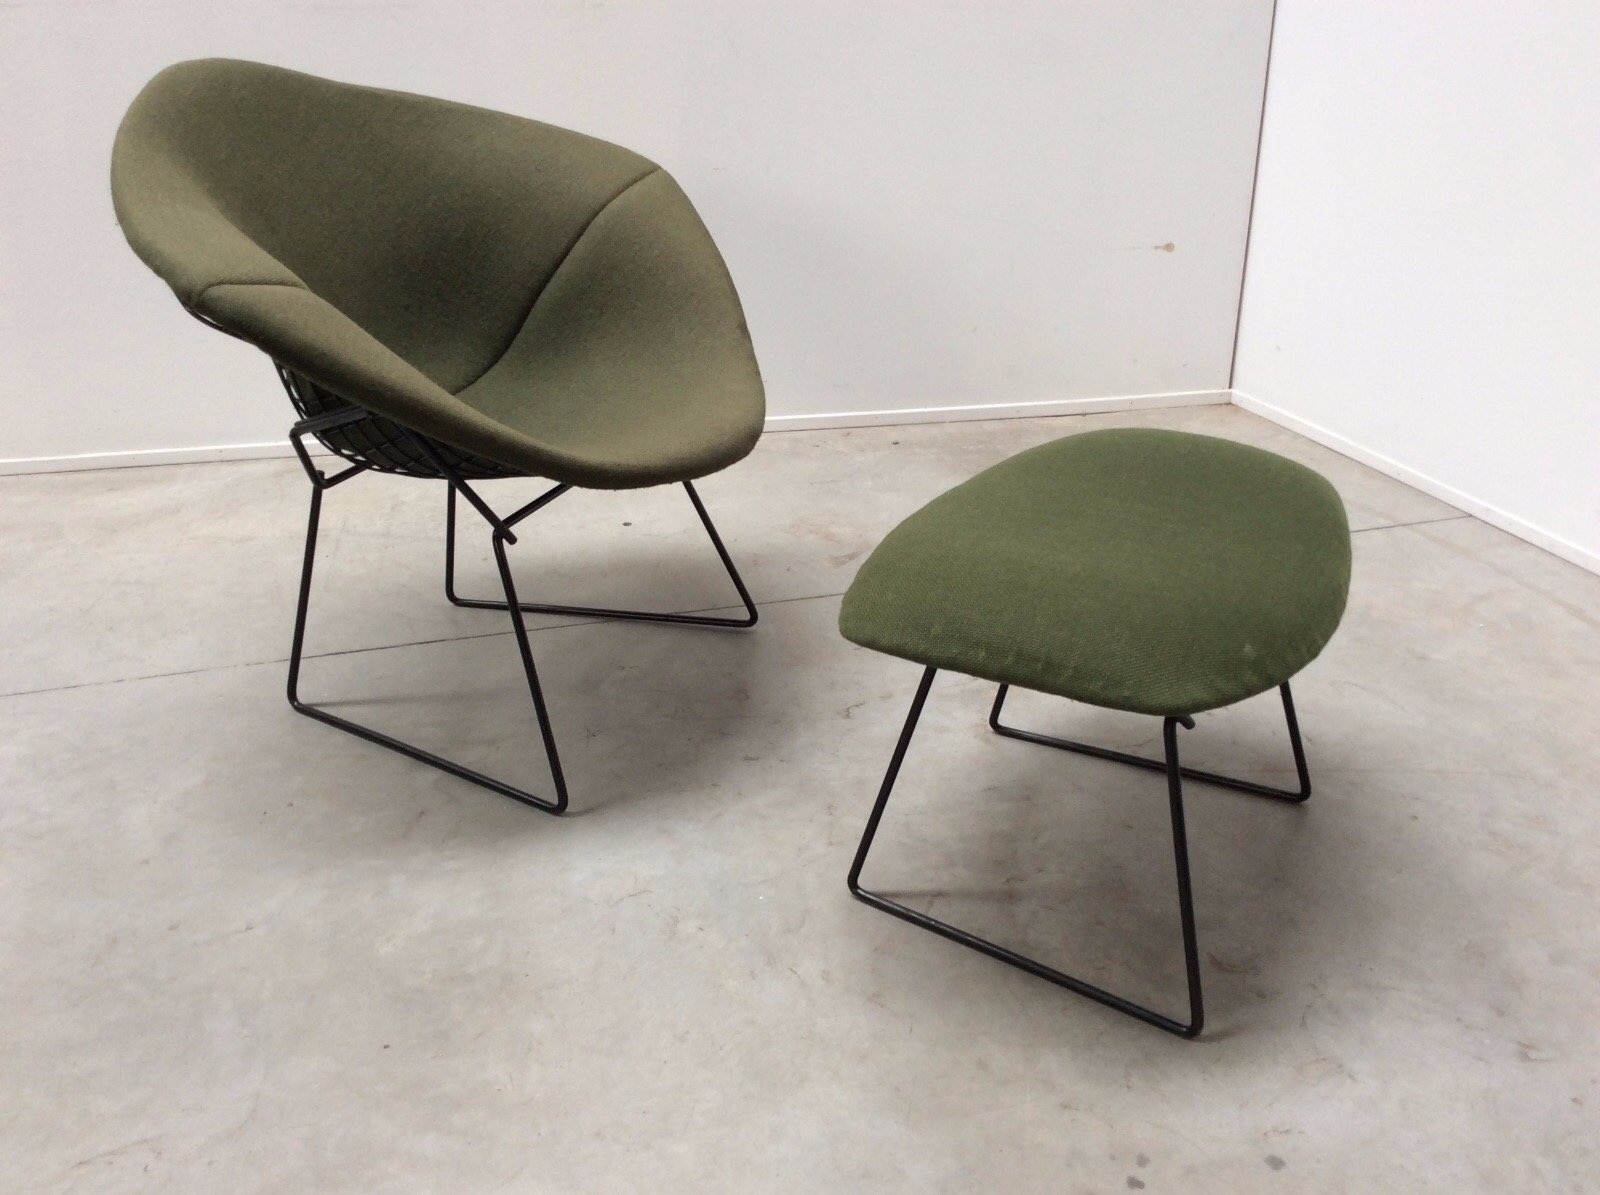 vintage diamond chair and ottoman by harry bertoia for knoll international for sale at pamono. Black Bedroom Furniture Sets. Home Design Ideas